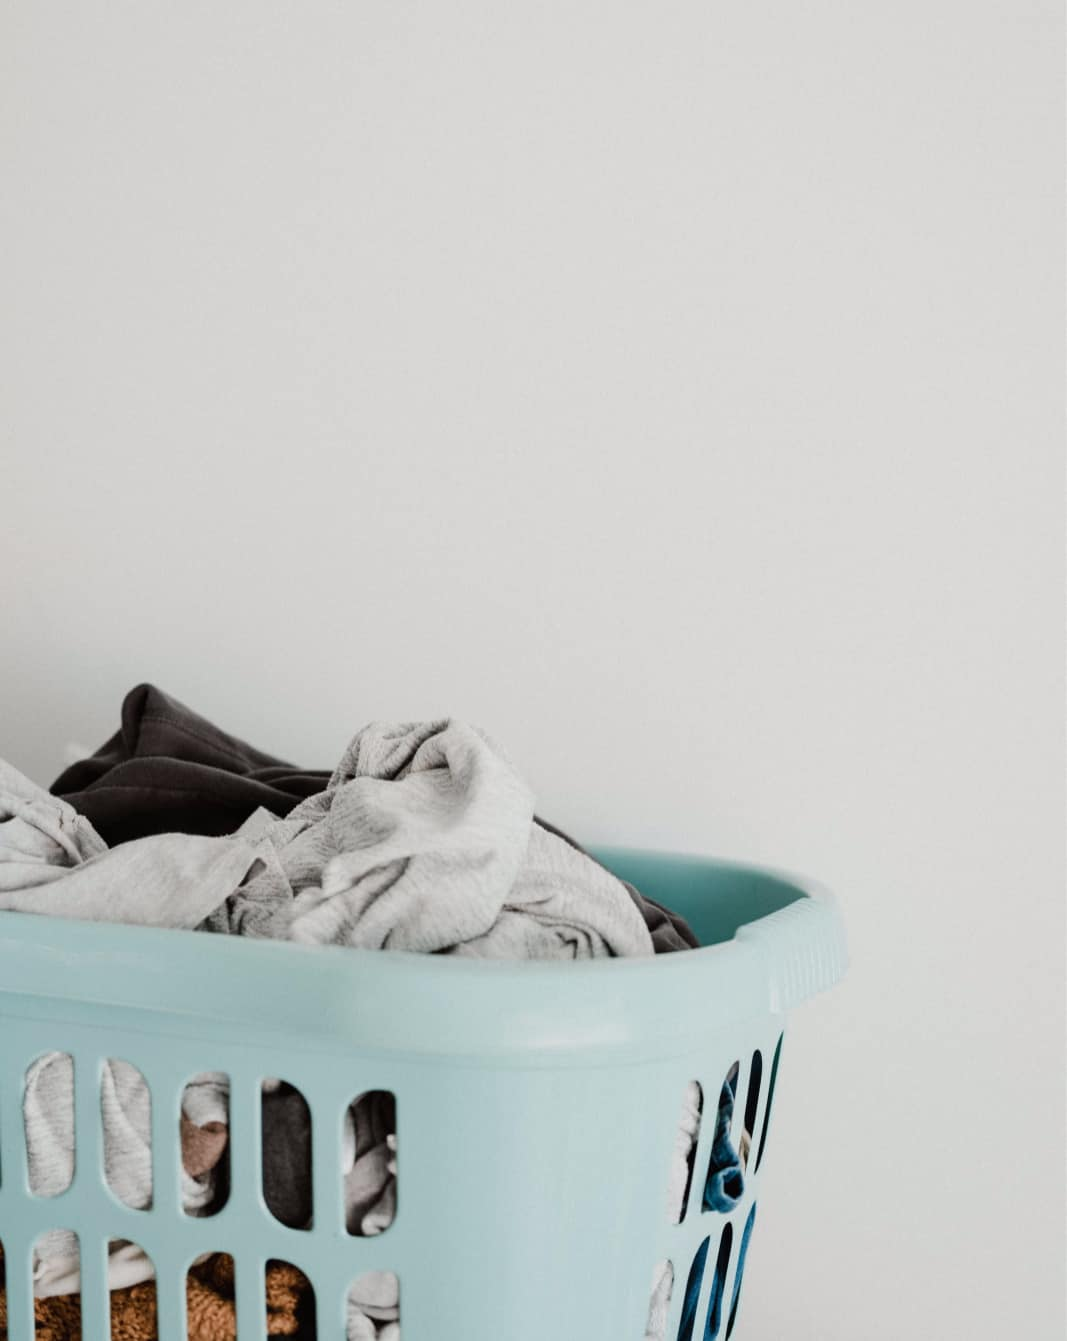 A pile of laundry in a light teal laundry basket sits against a white wall.